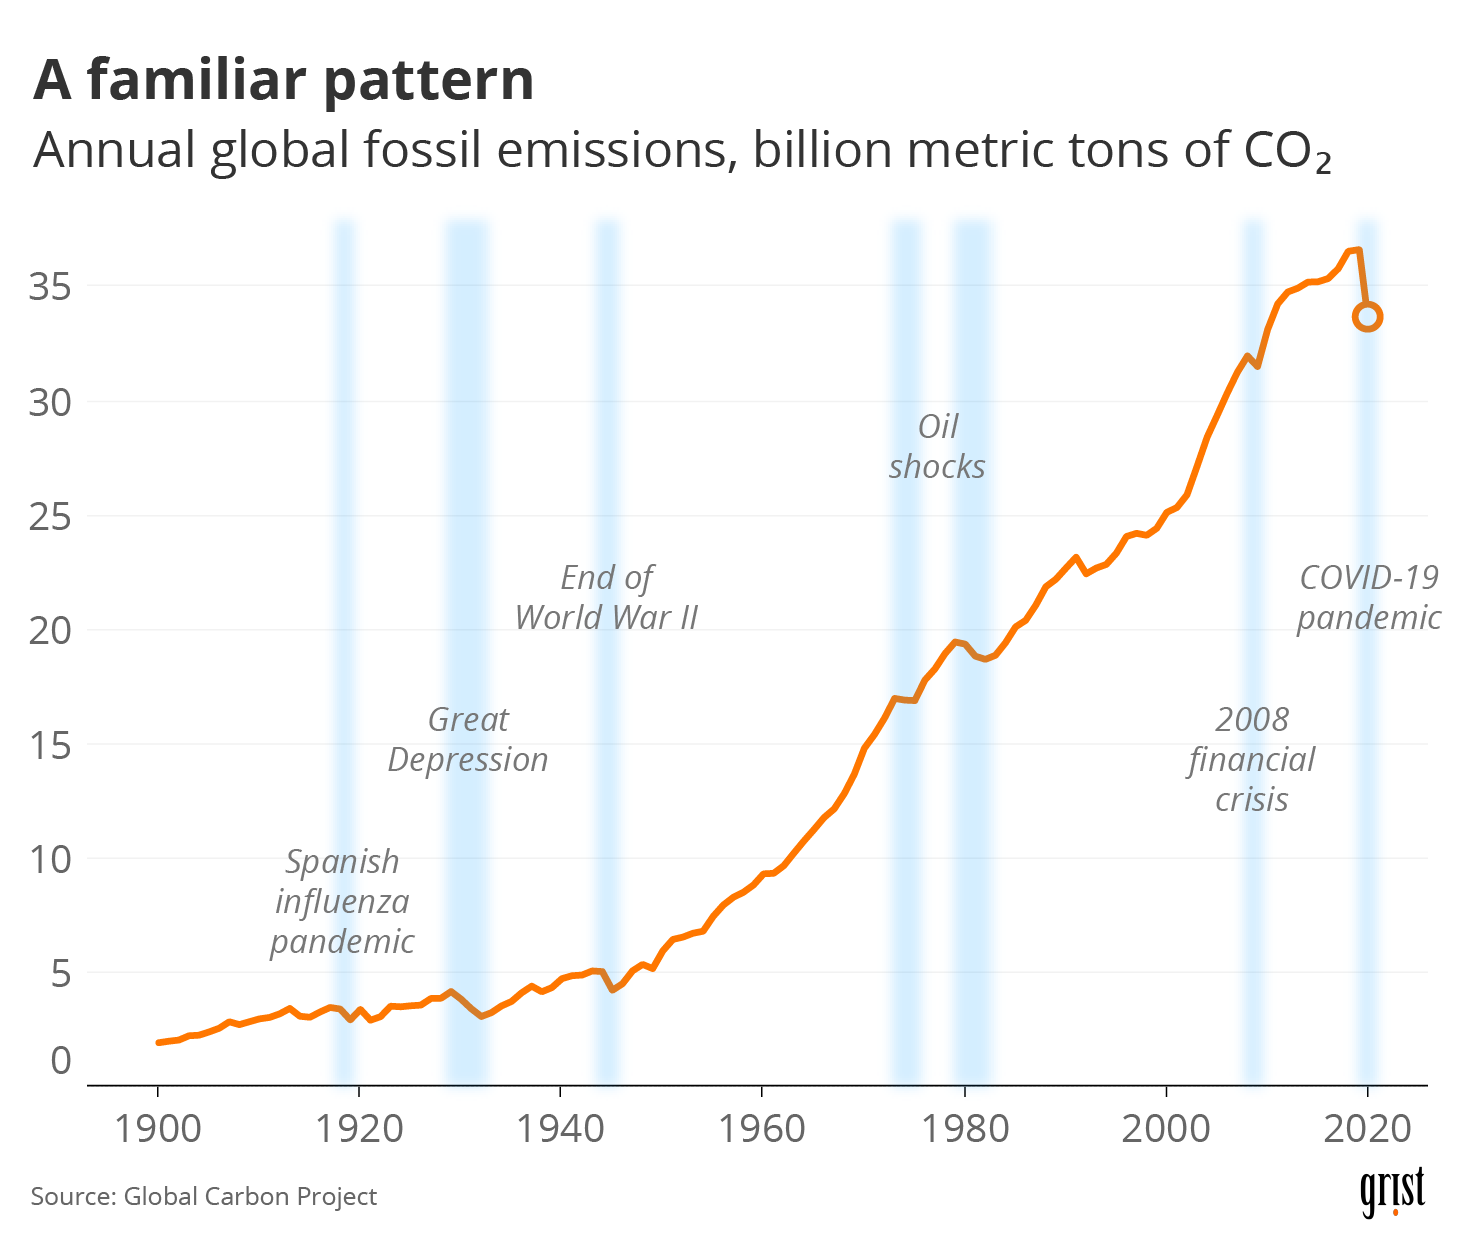 A line chart showing annual global fossil emissions from 1900 through 2020 in billion metric tons of CO2. Various global shocks (including the Great Depression and the 2008 financial crisis) lead to dips in emissions. The COVID-19 pandemic elicits the largest decrease.